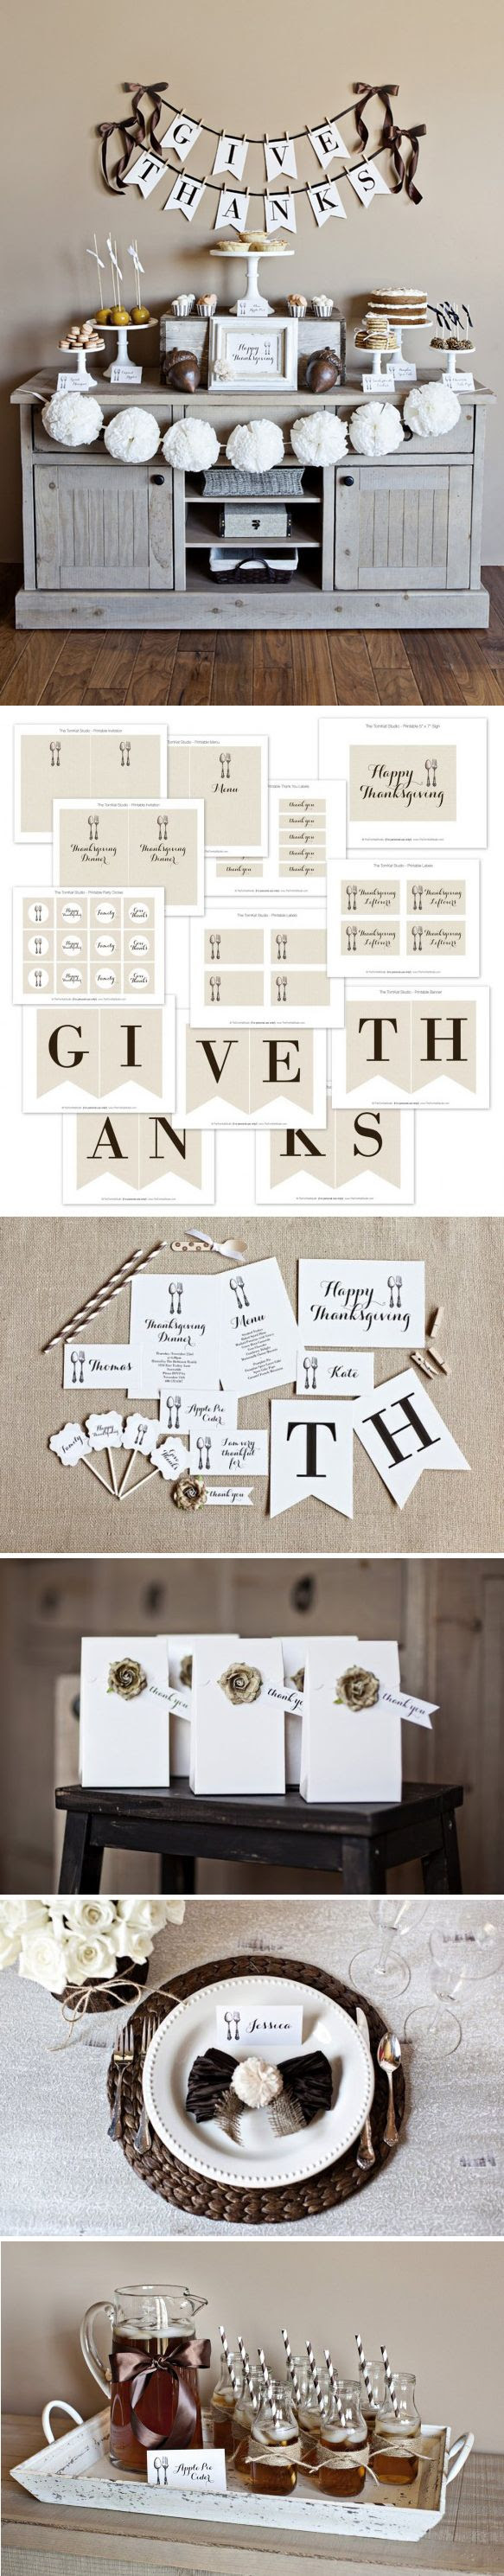 GiveThanks Collection 2012 - free printables from TheTomkat Studio http://www.thetomkatstudio.com/thanksgivingprintables/